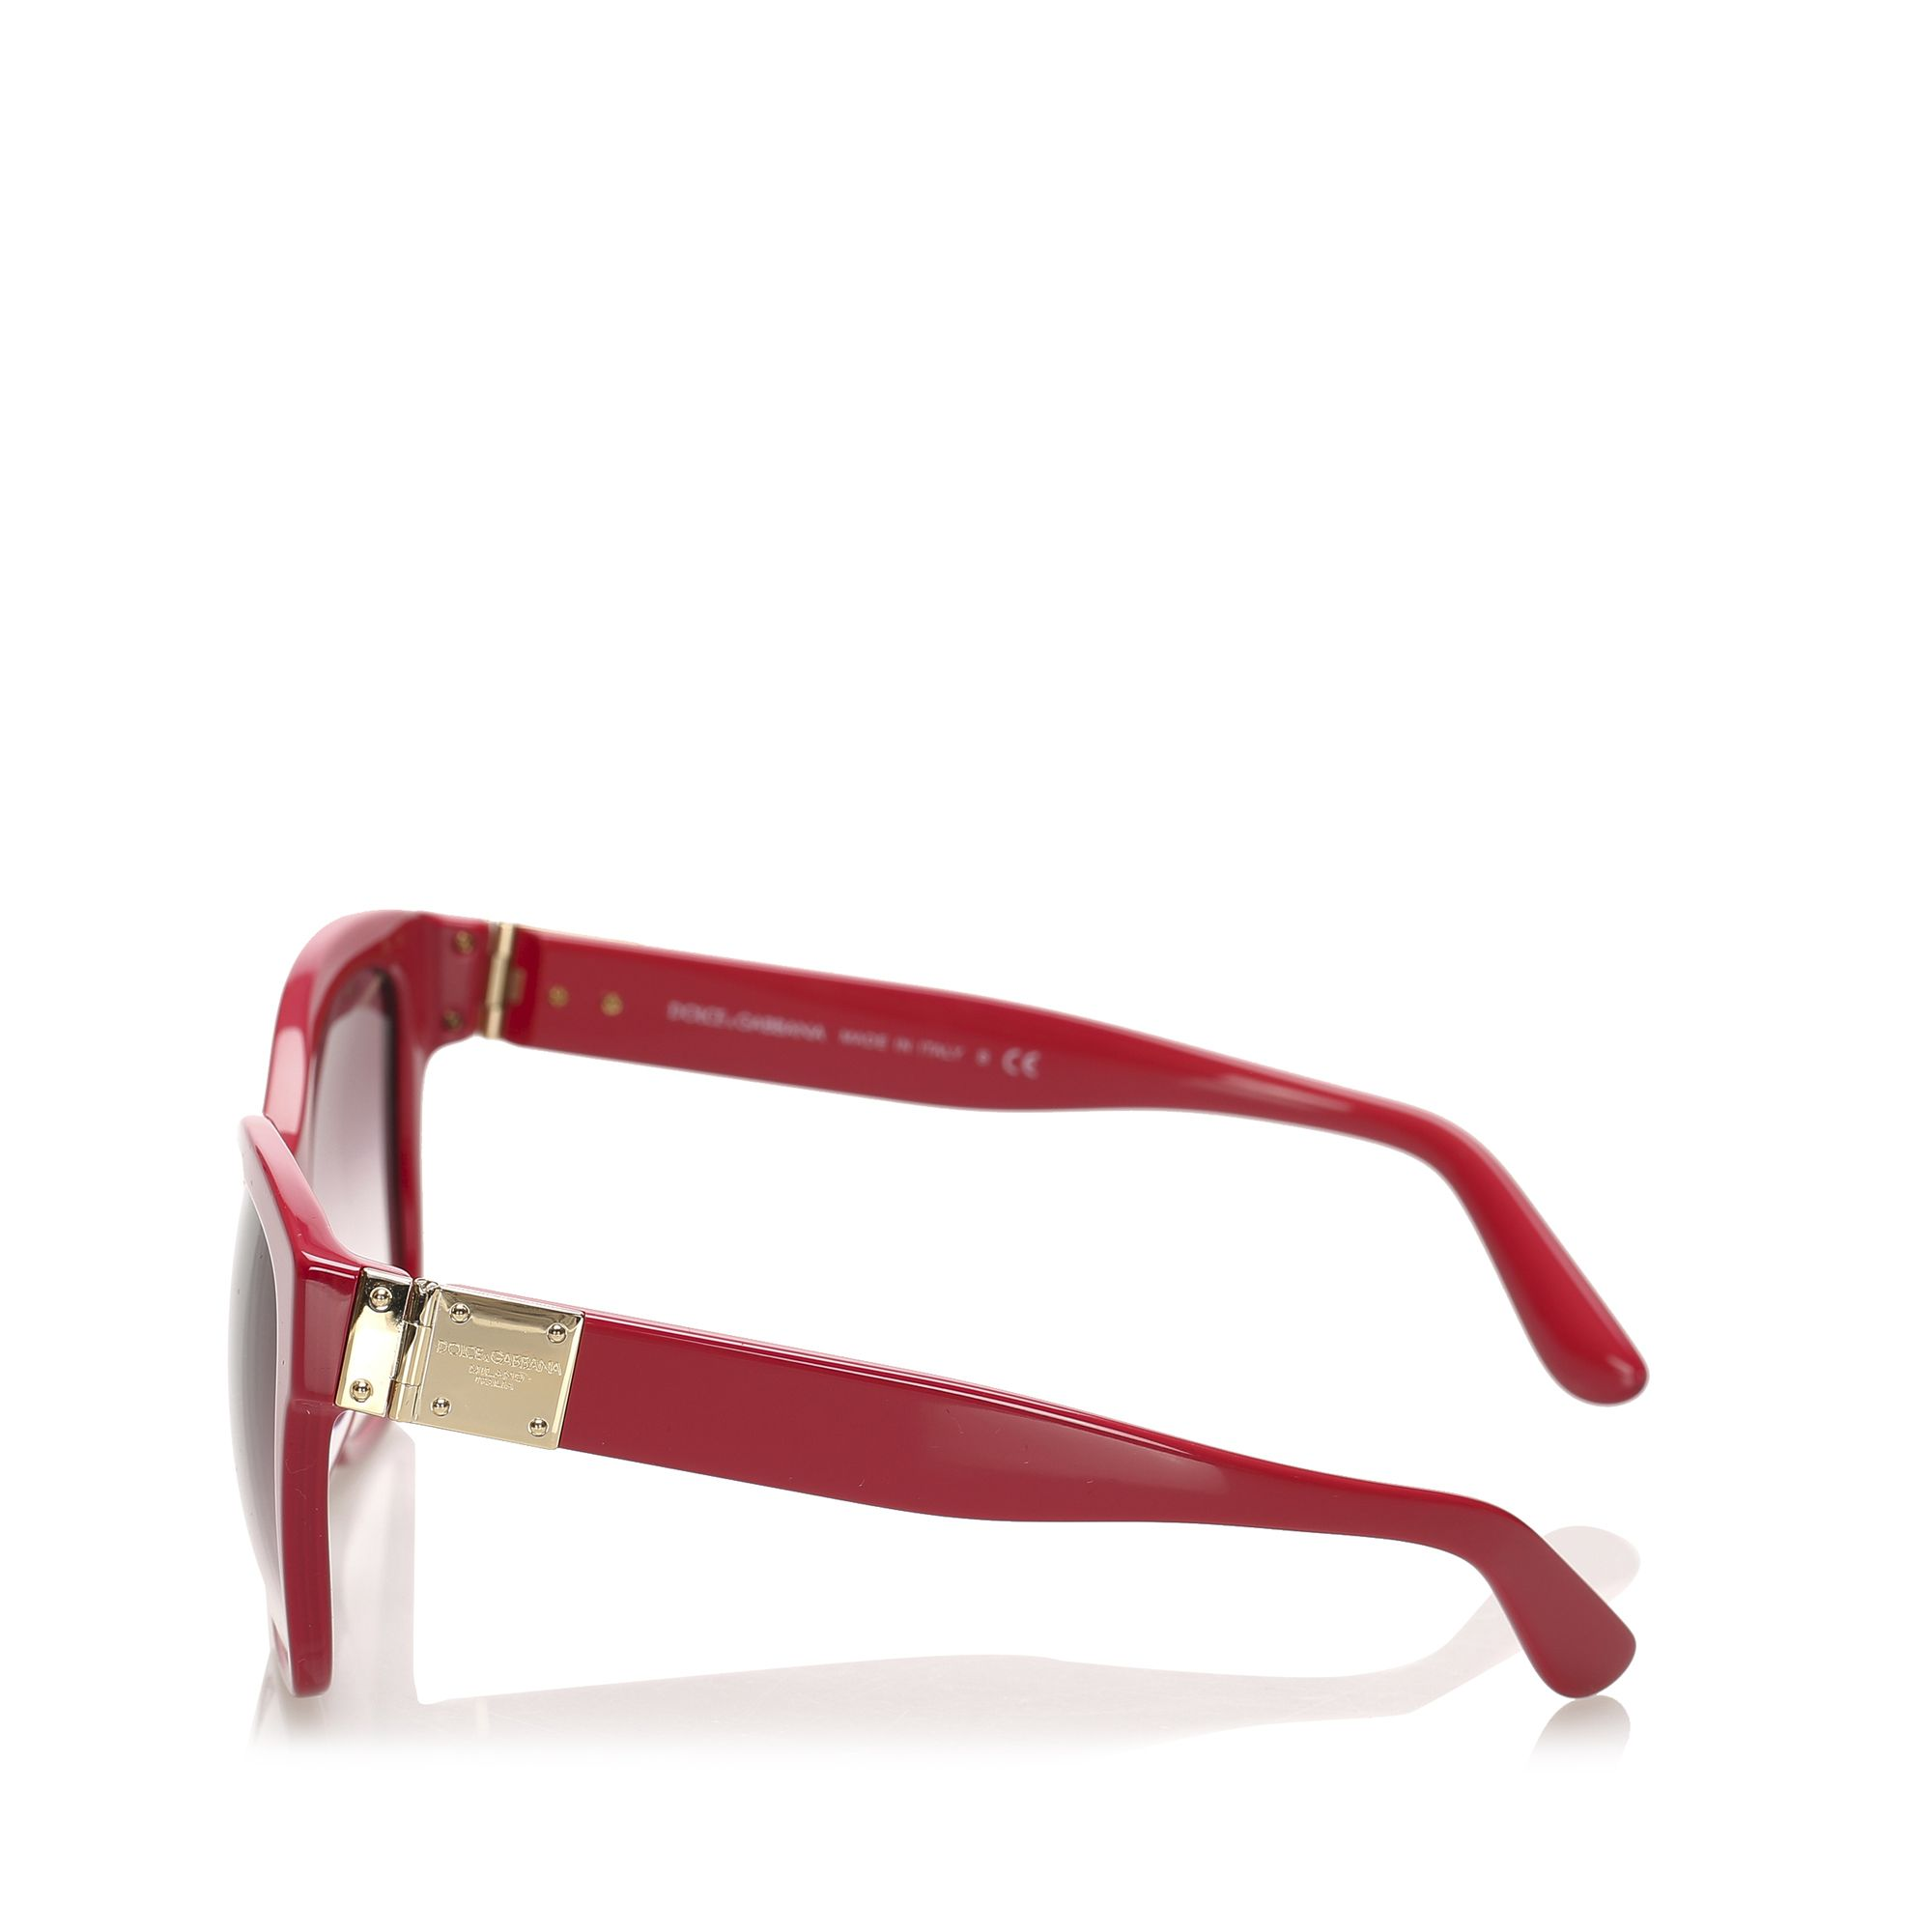 Vintage Dolce&Gabbana Square Tinted Sunglasses Red